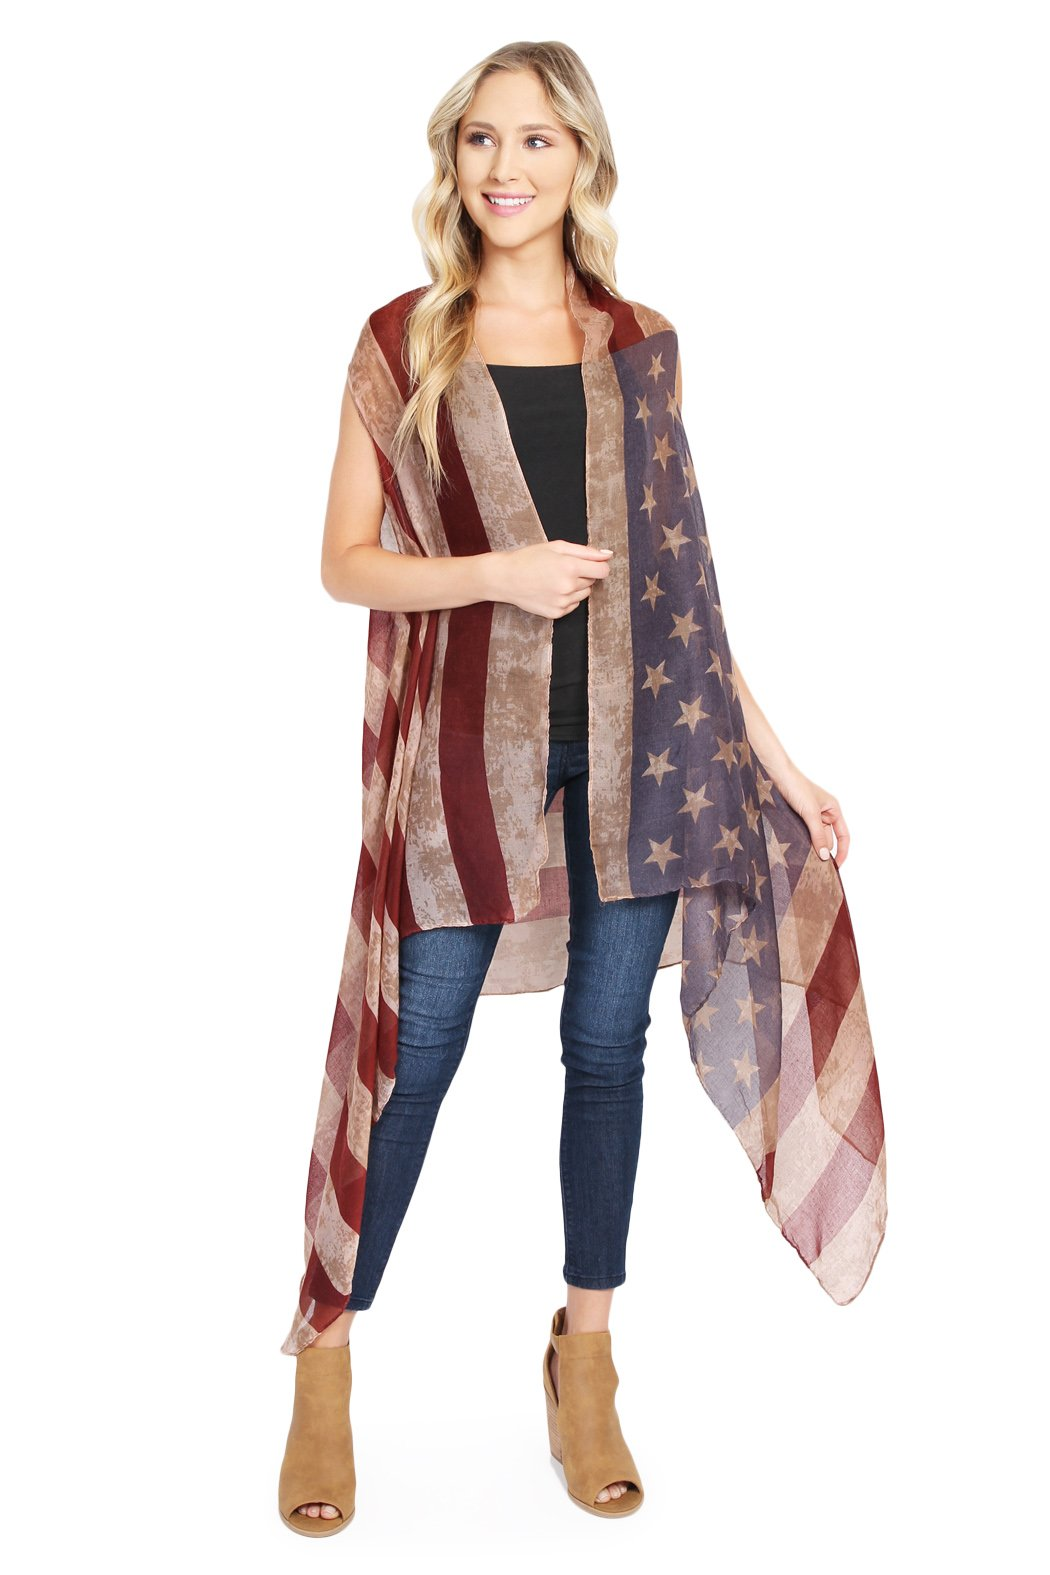 MYS Collection American Flag Cardigan - July 4th USA Stars and Stripes Pattern Lightweight Shawl Kimono Vest